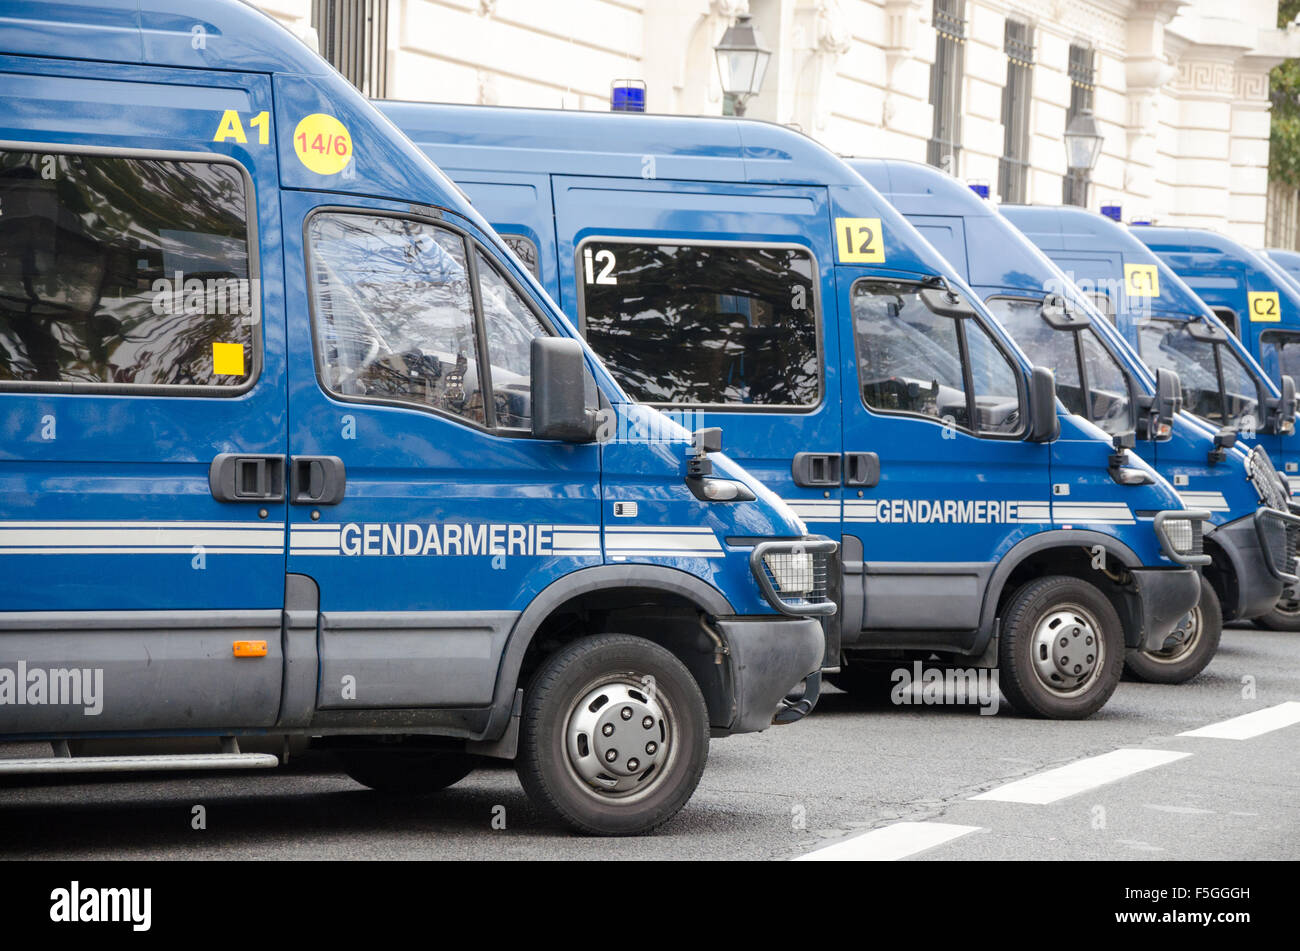 French Police Gendarmerie Vans parked in the national police office - Stock Image